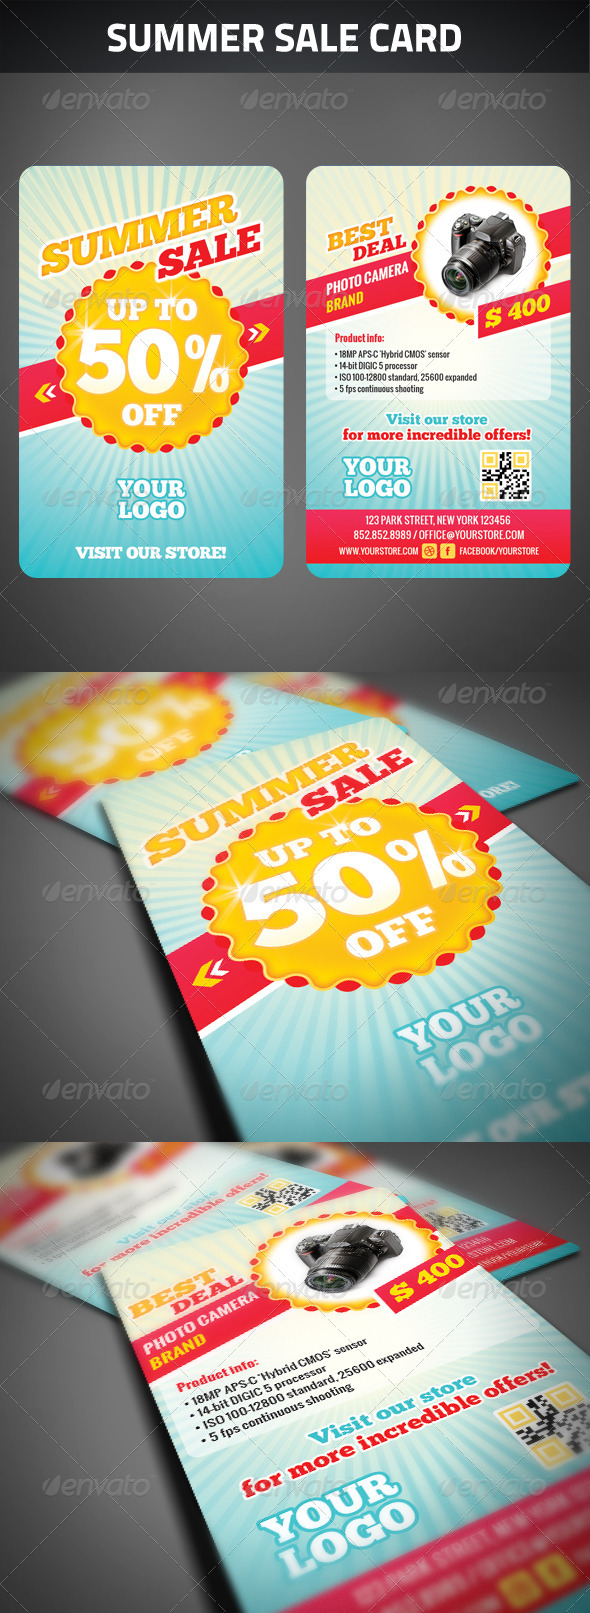 GraphicRiver Summer Sale Card 2613850